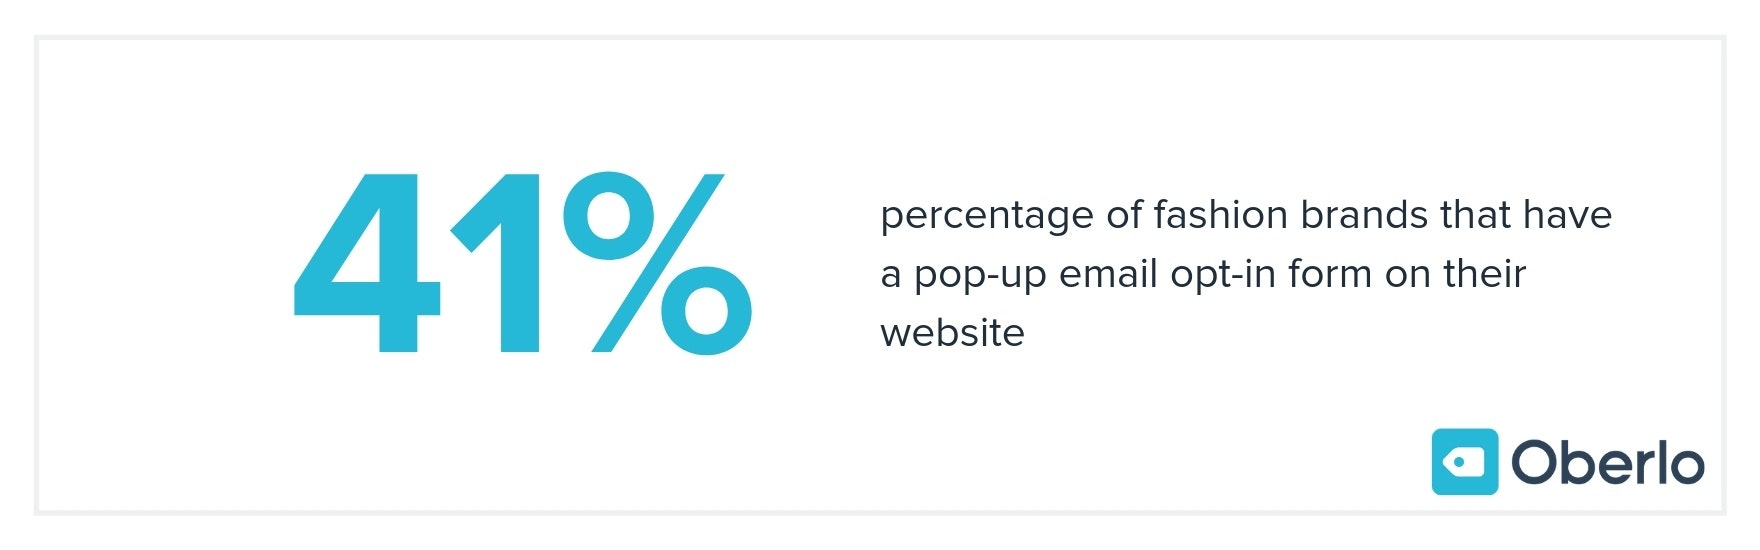 pop-up email form percentage